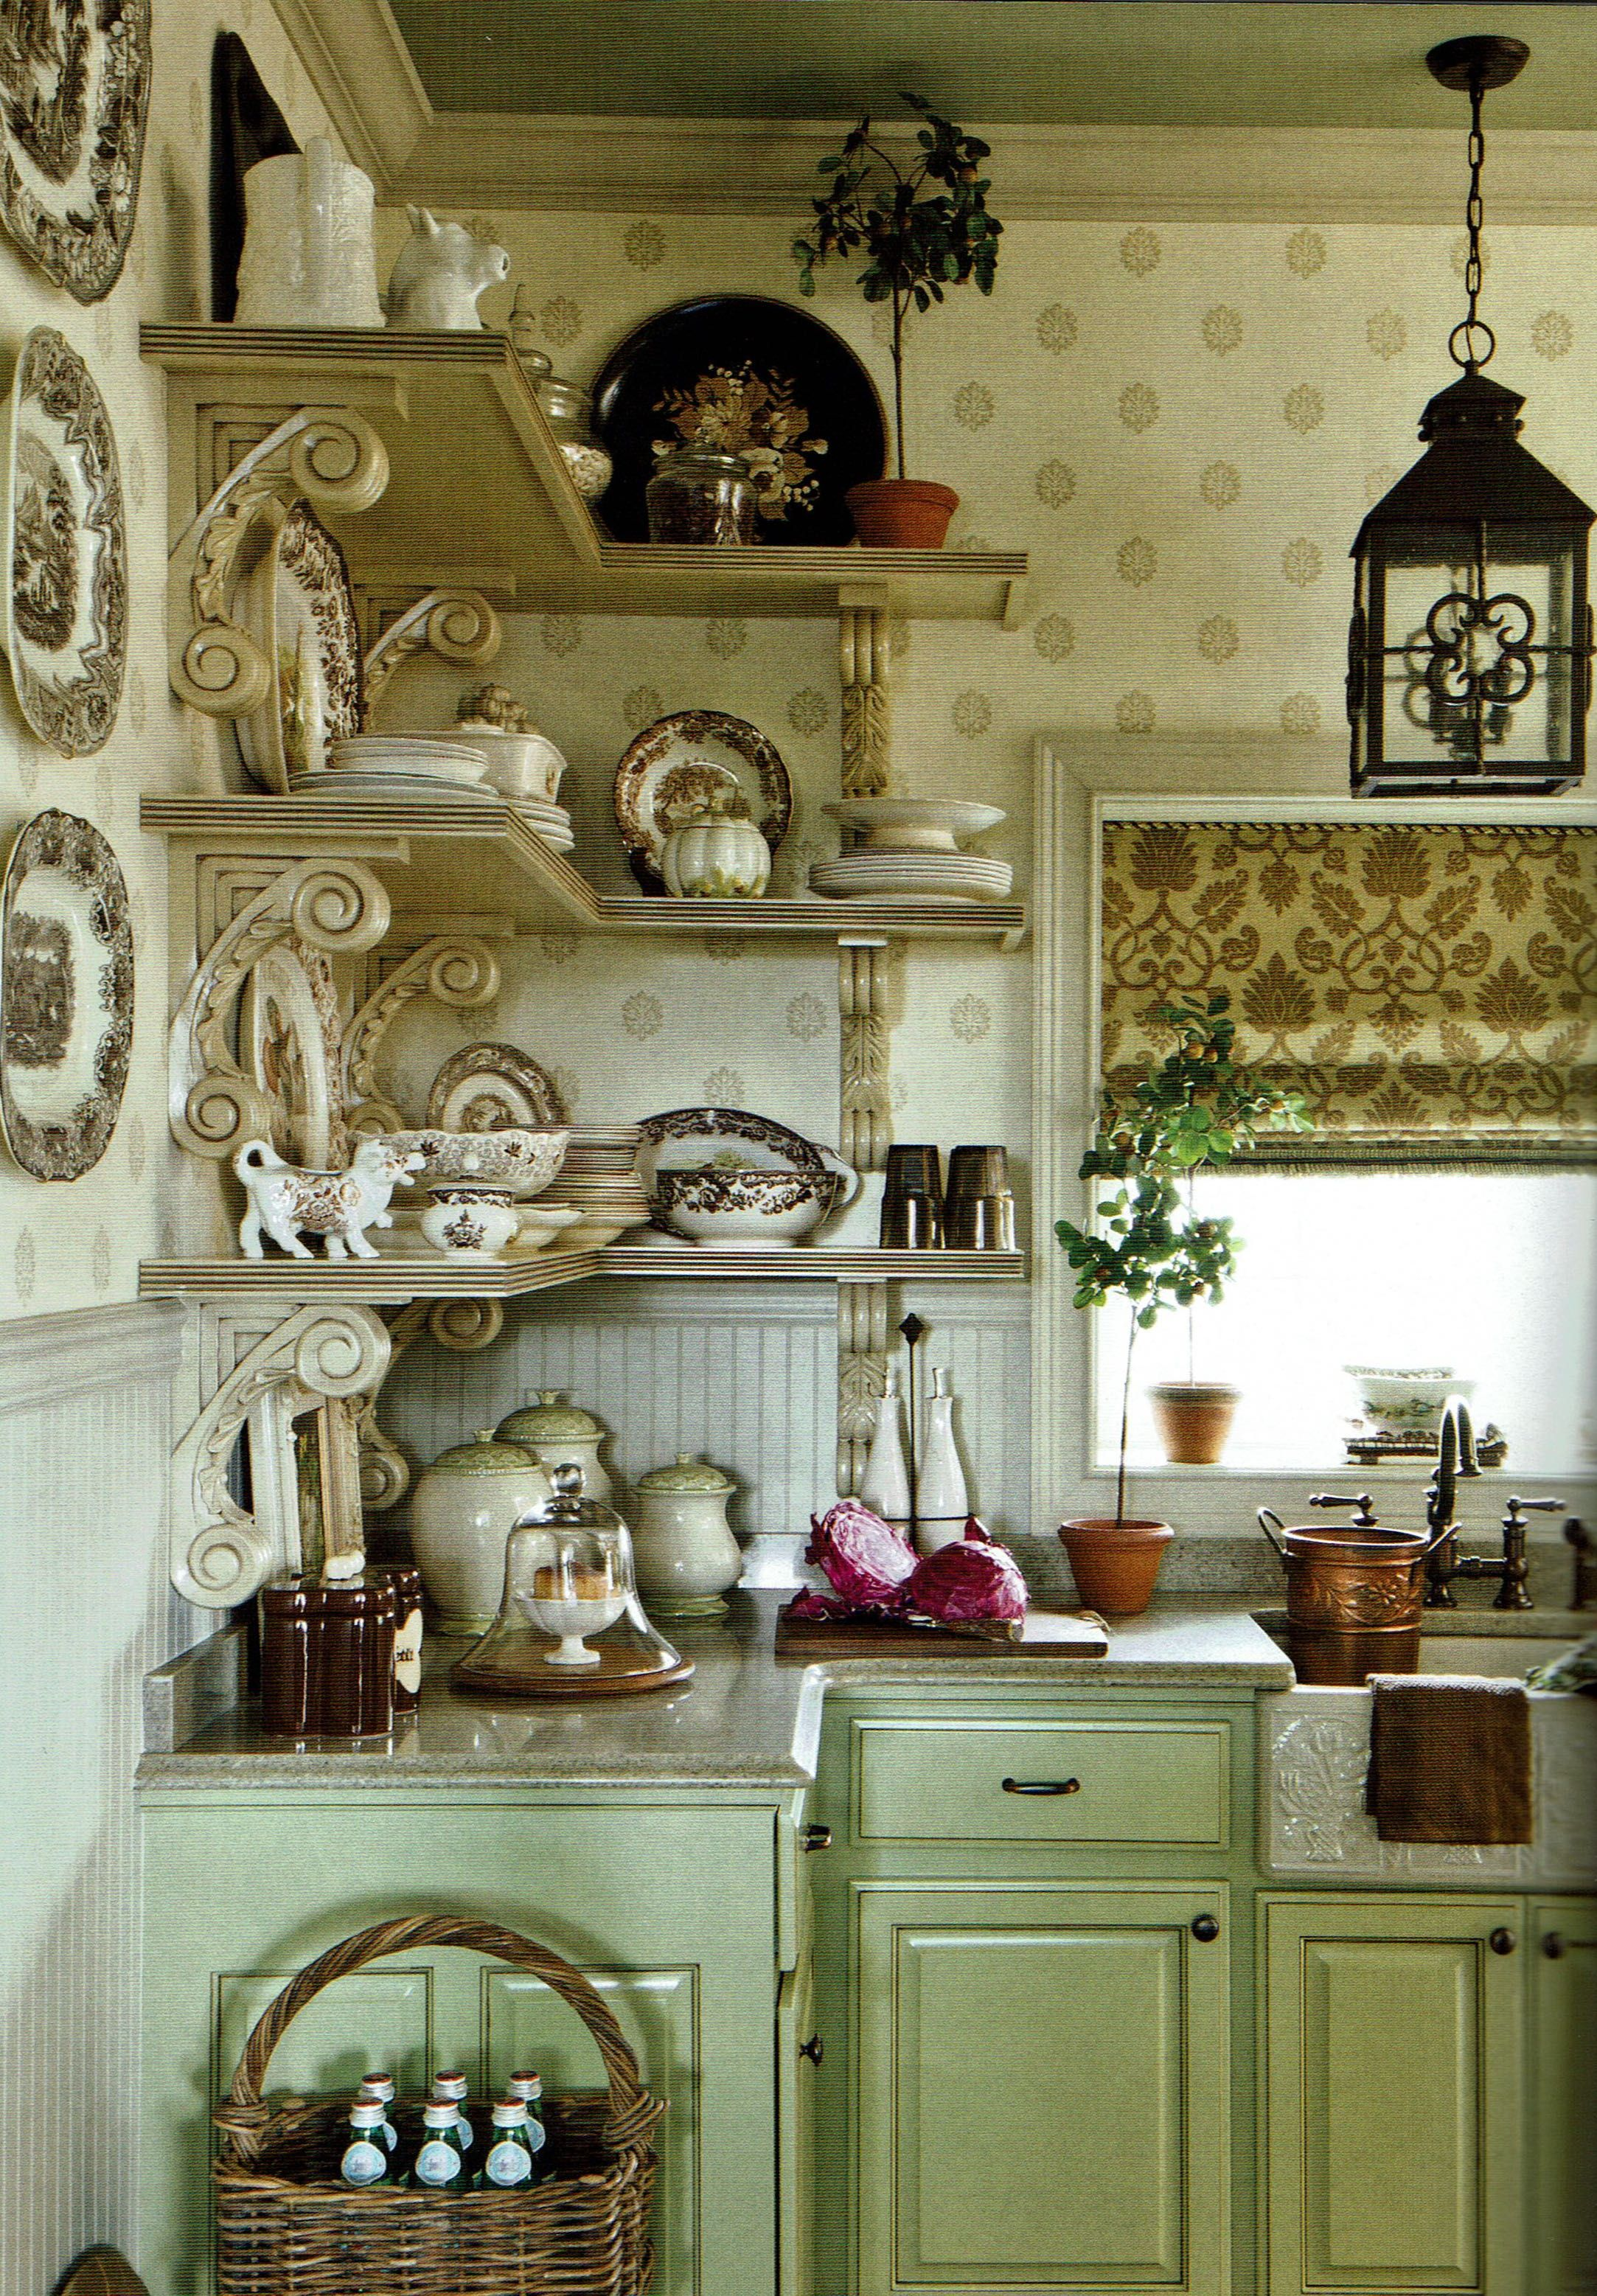 charles faudree inspired french country kitchen interior design eric ross interiors ph on kitchen interior french country id=17682